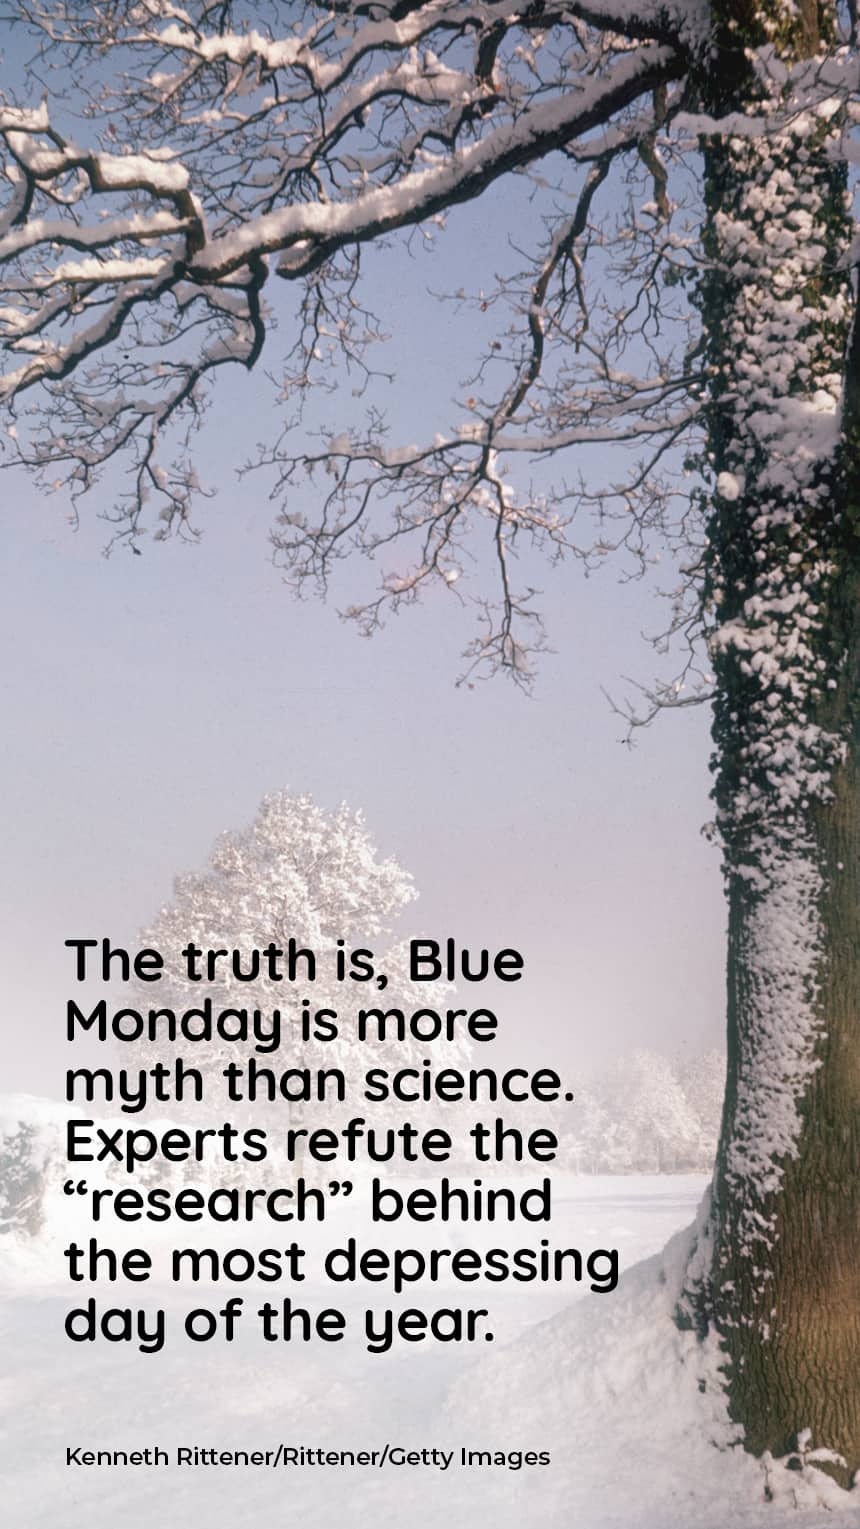 """The truth is, Blue Monday is more myth than science. Experts refute the """"research"""" behind the most depressing day of the year.  IMAGE: a snowy landscape"""